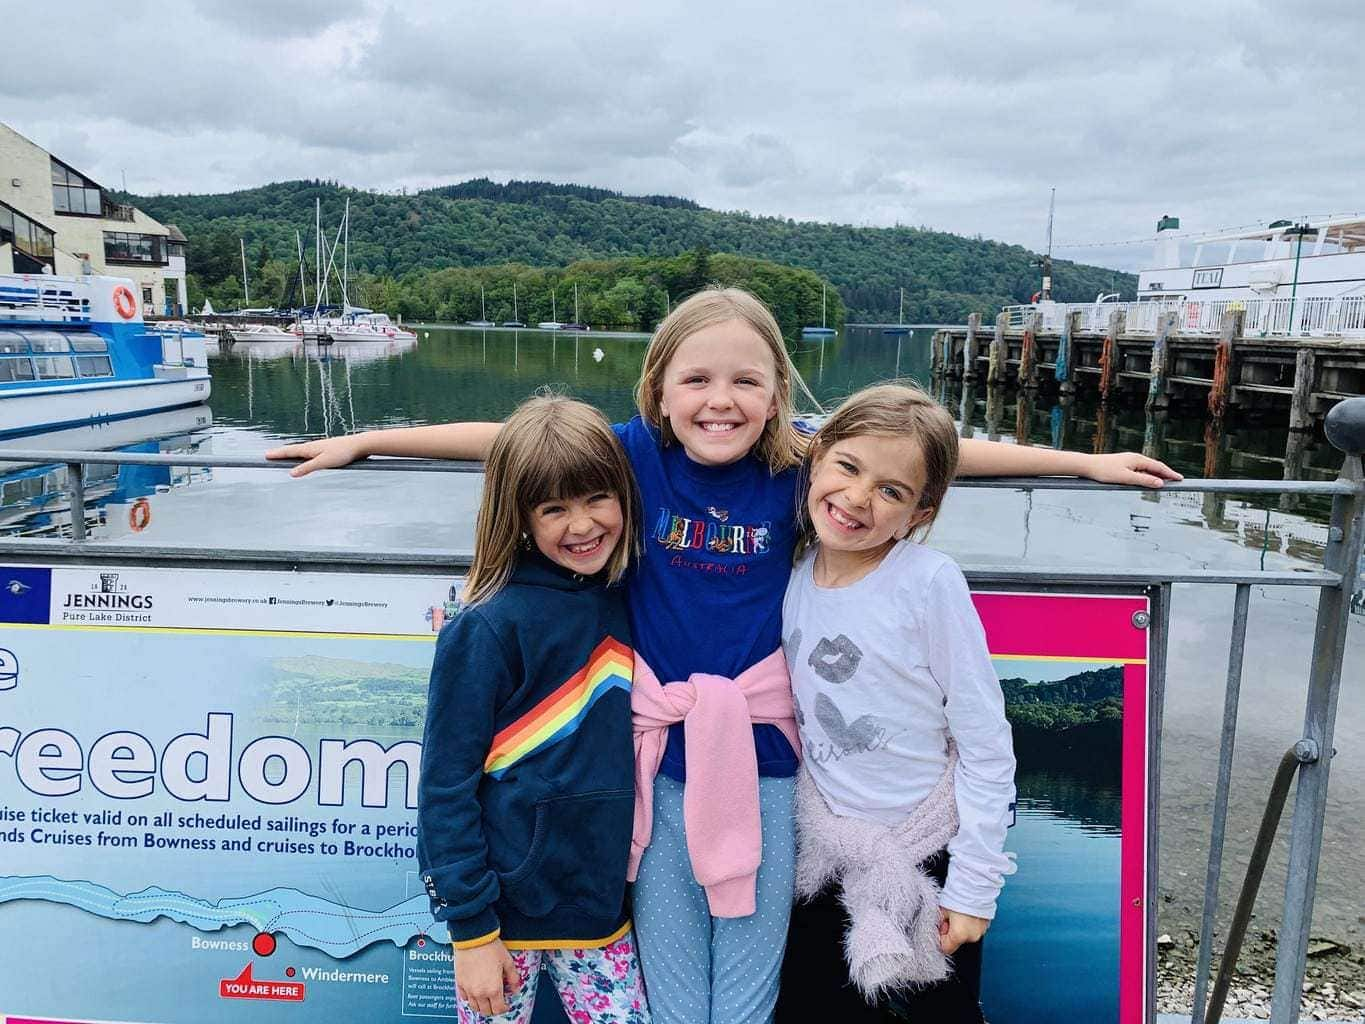 6 Family Fun Adventures on Windermere | Lake District